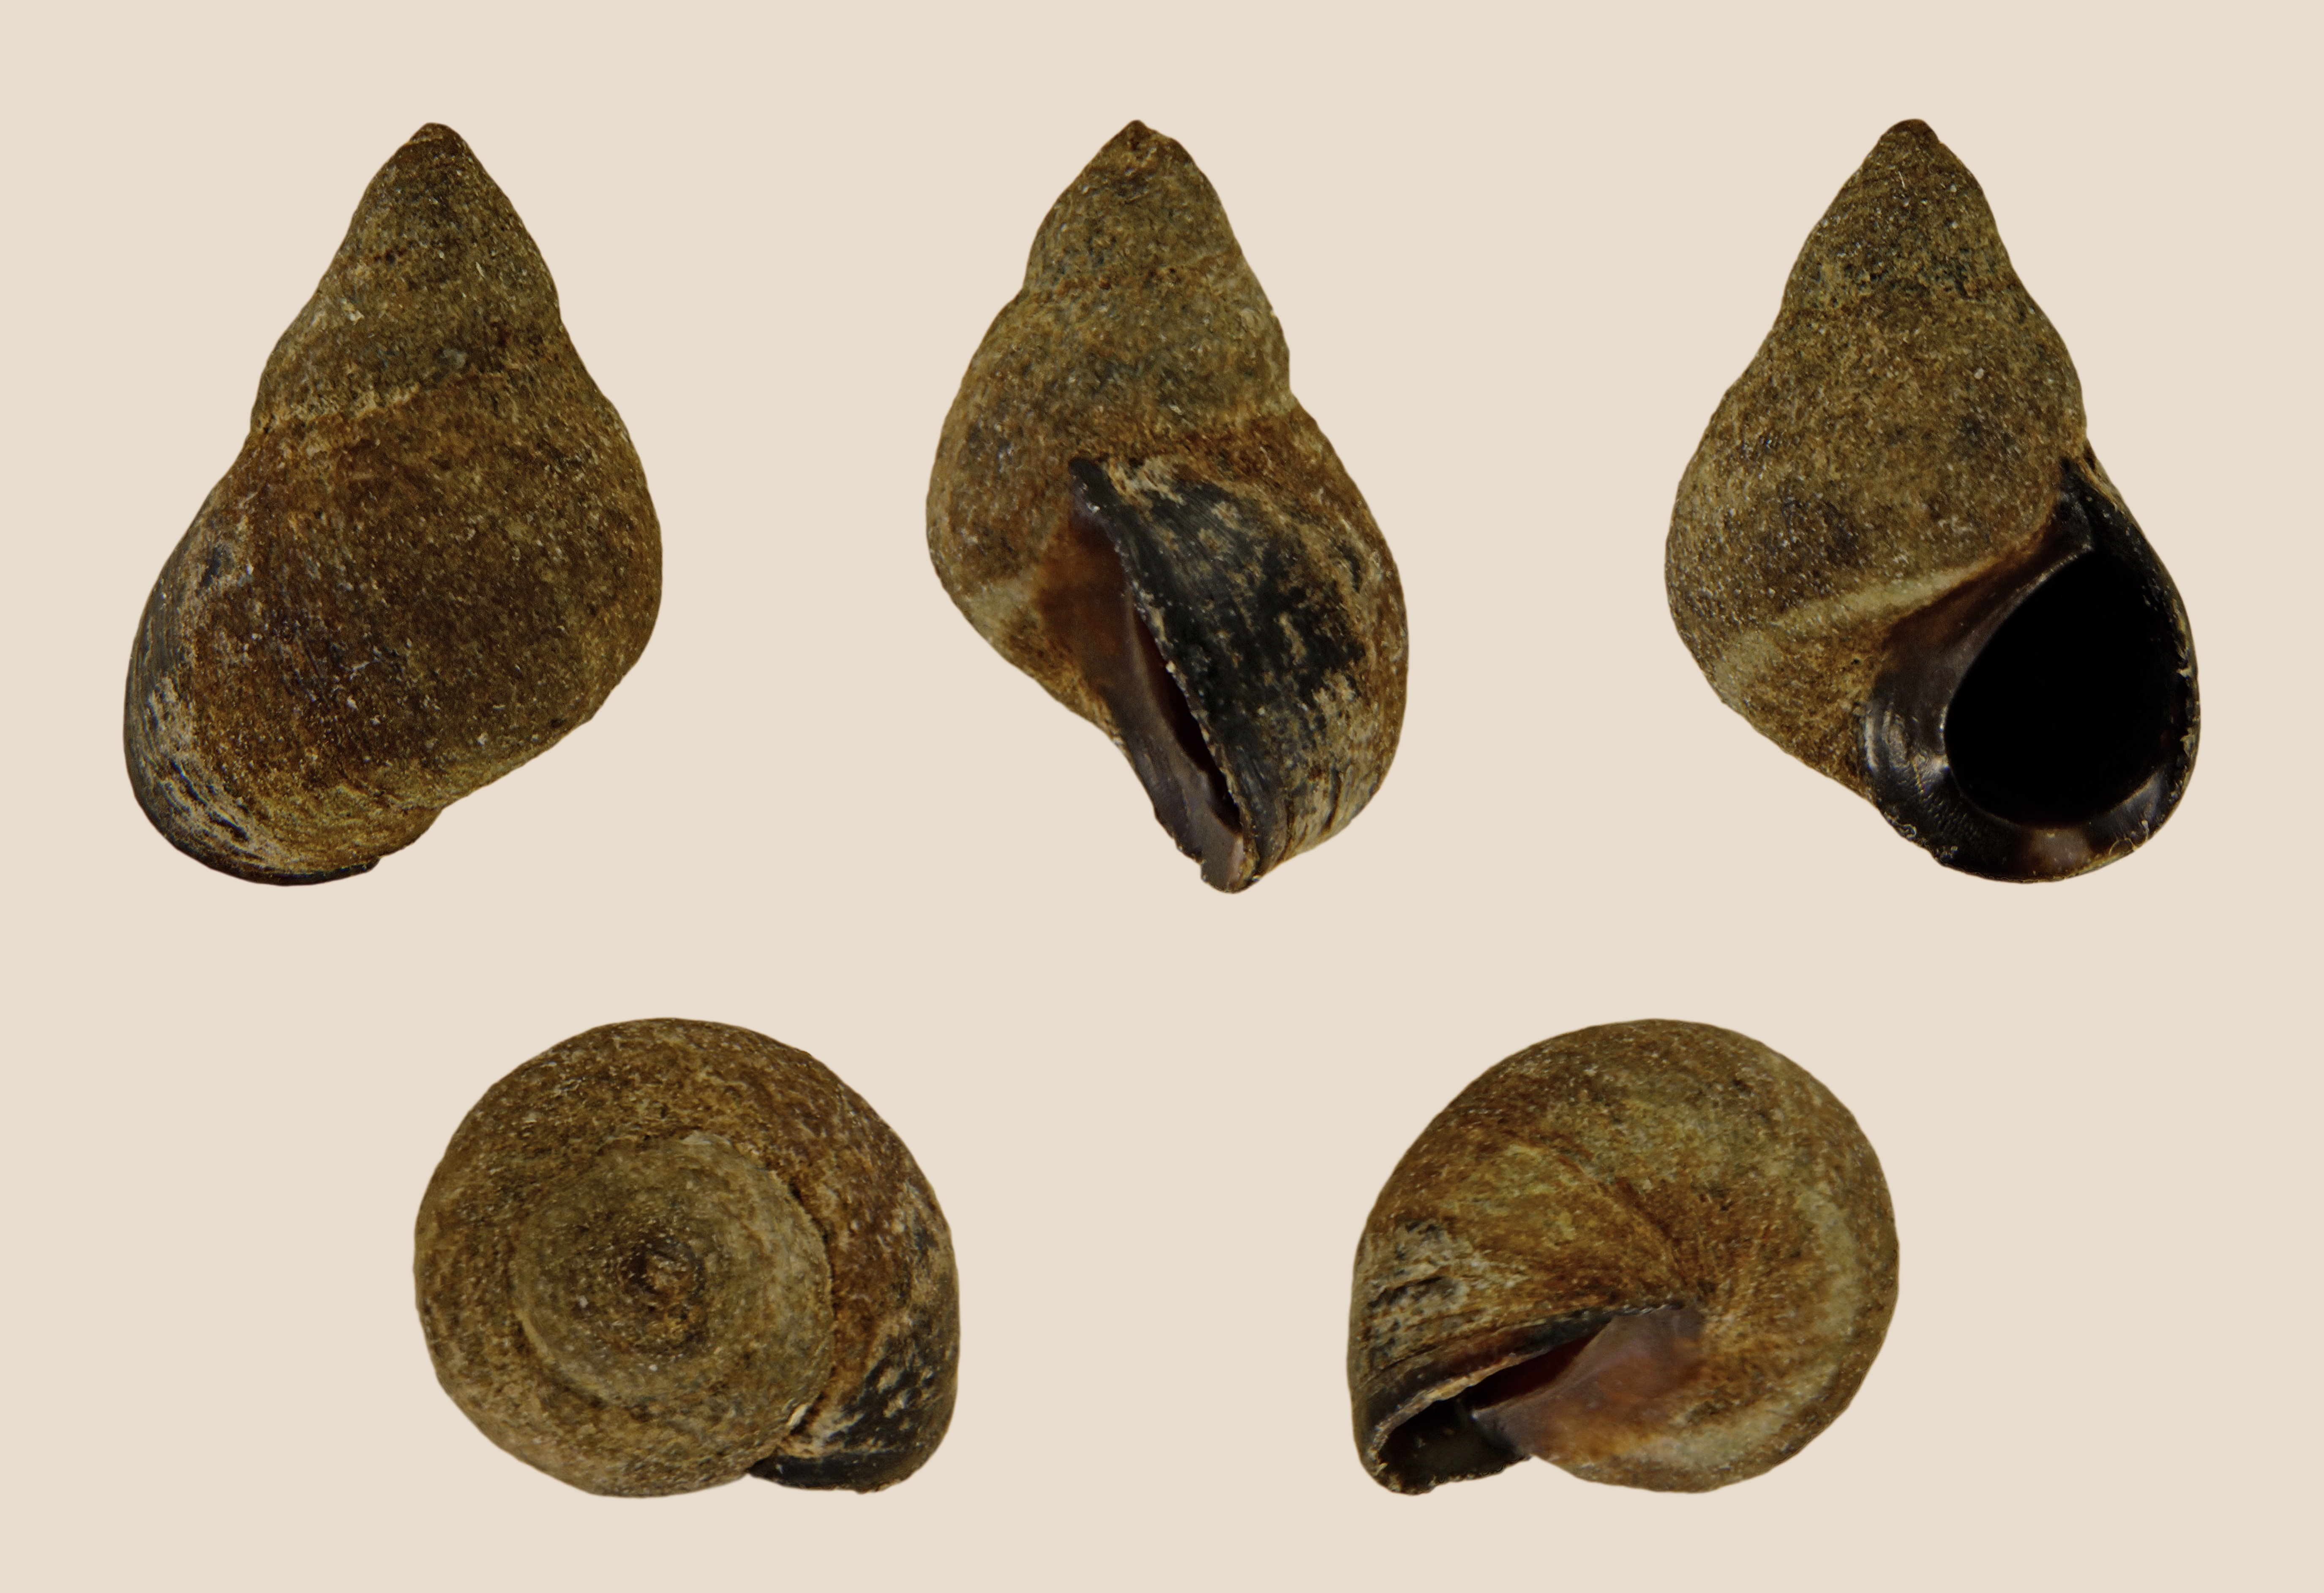 Image of small periwinkle